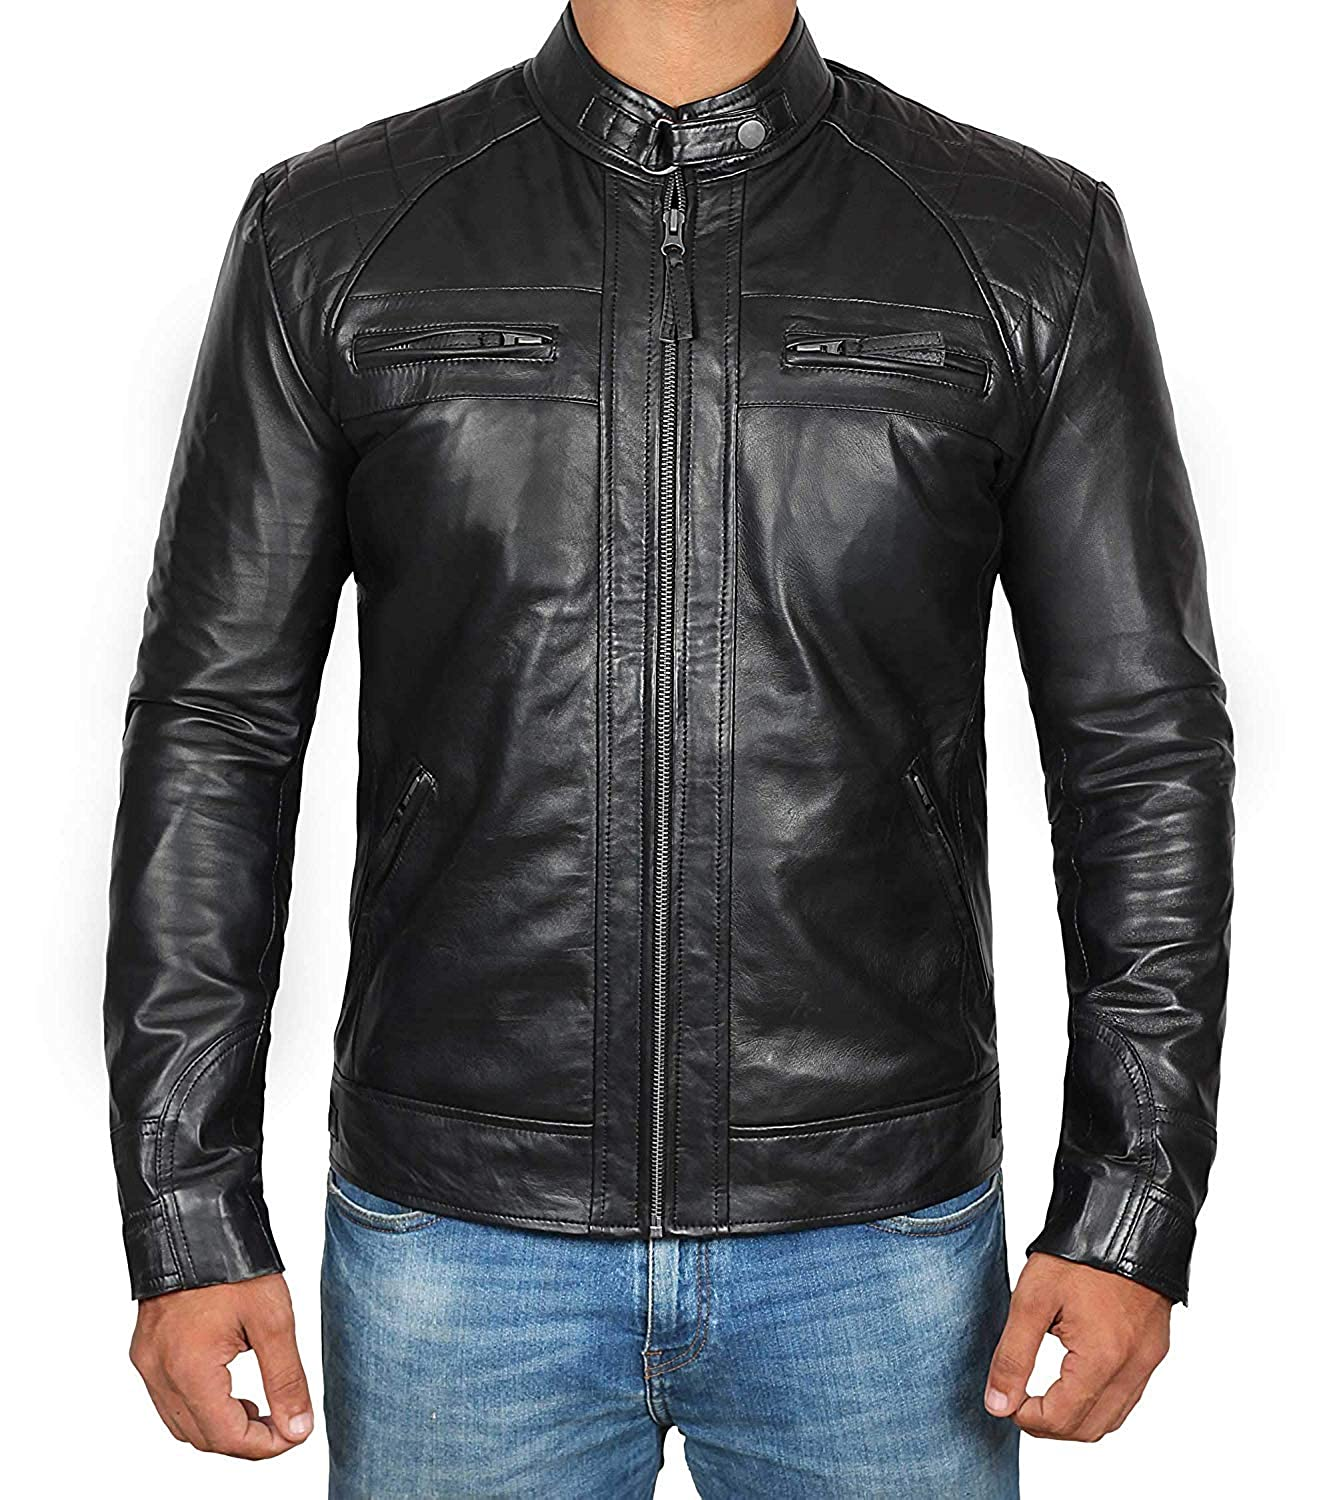 f36ed5761 Mens Leather Jacket for Biker - Distressed Genuine Lambskin Brown Leather  Jacket Men